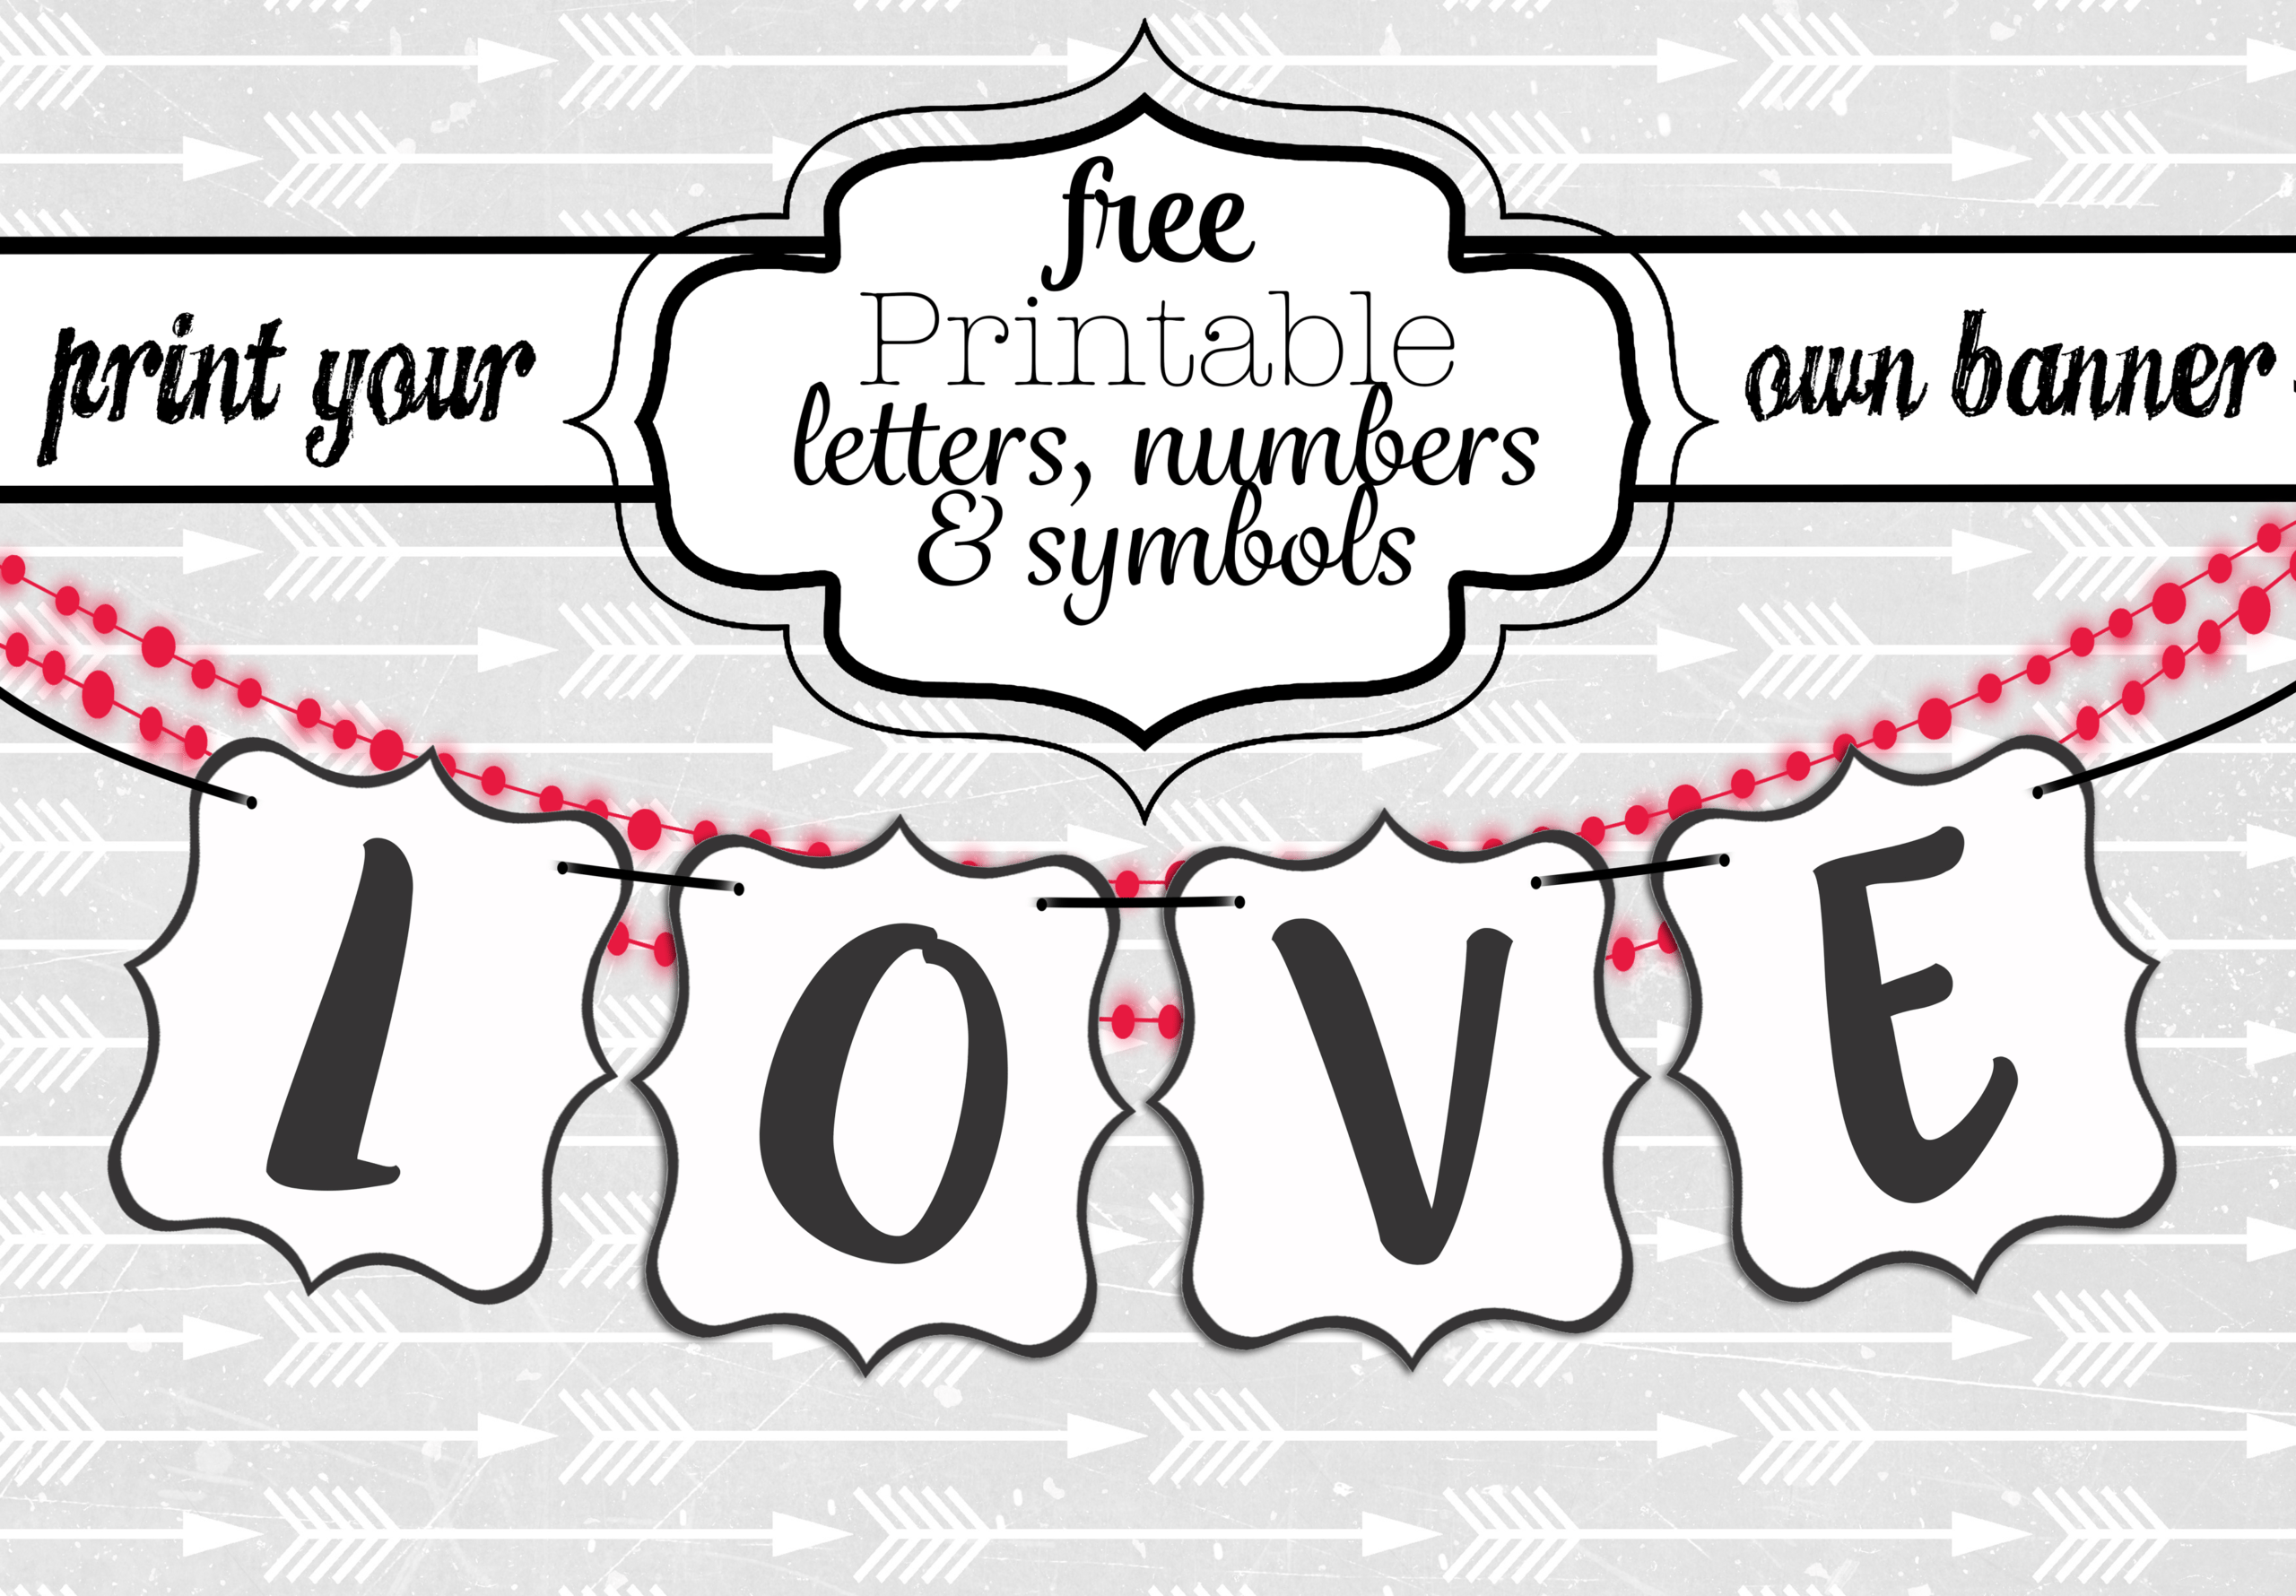 Free Printable Letters For Banners Entire Alphabet Letter regarding Free Letter Templates For Banners